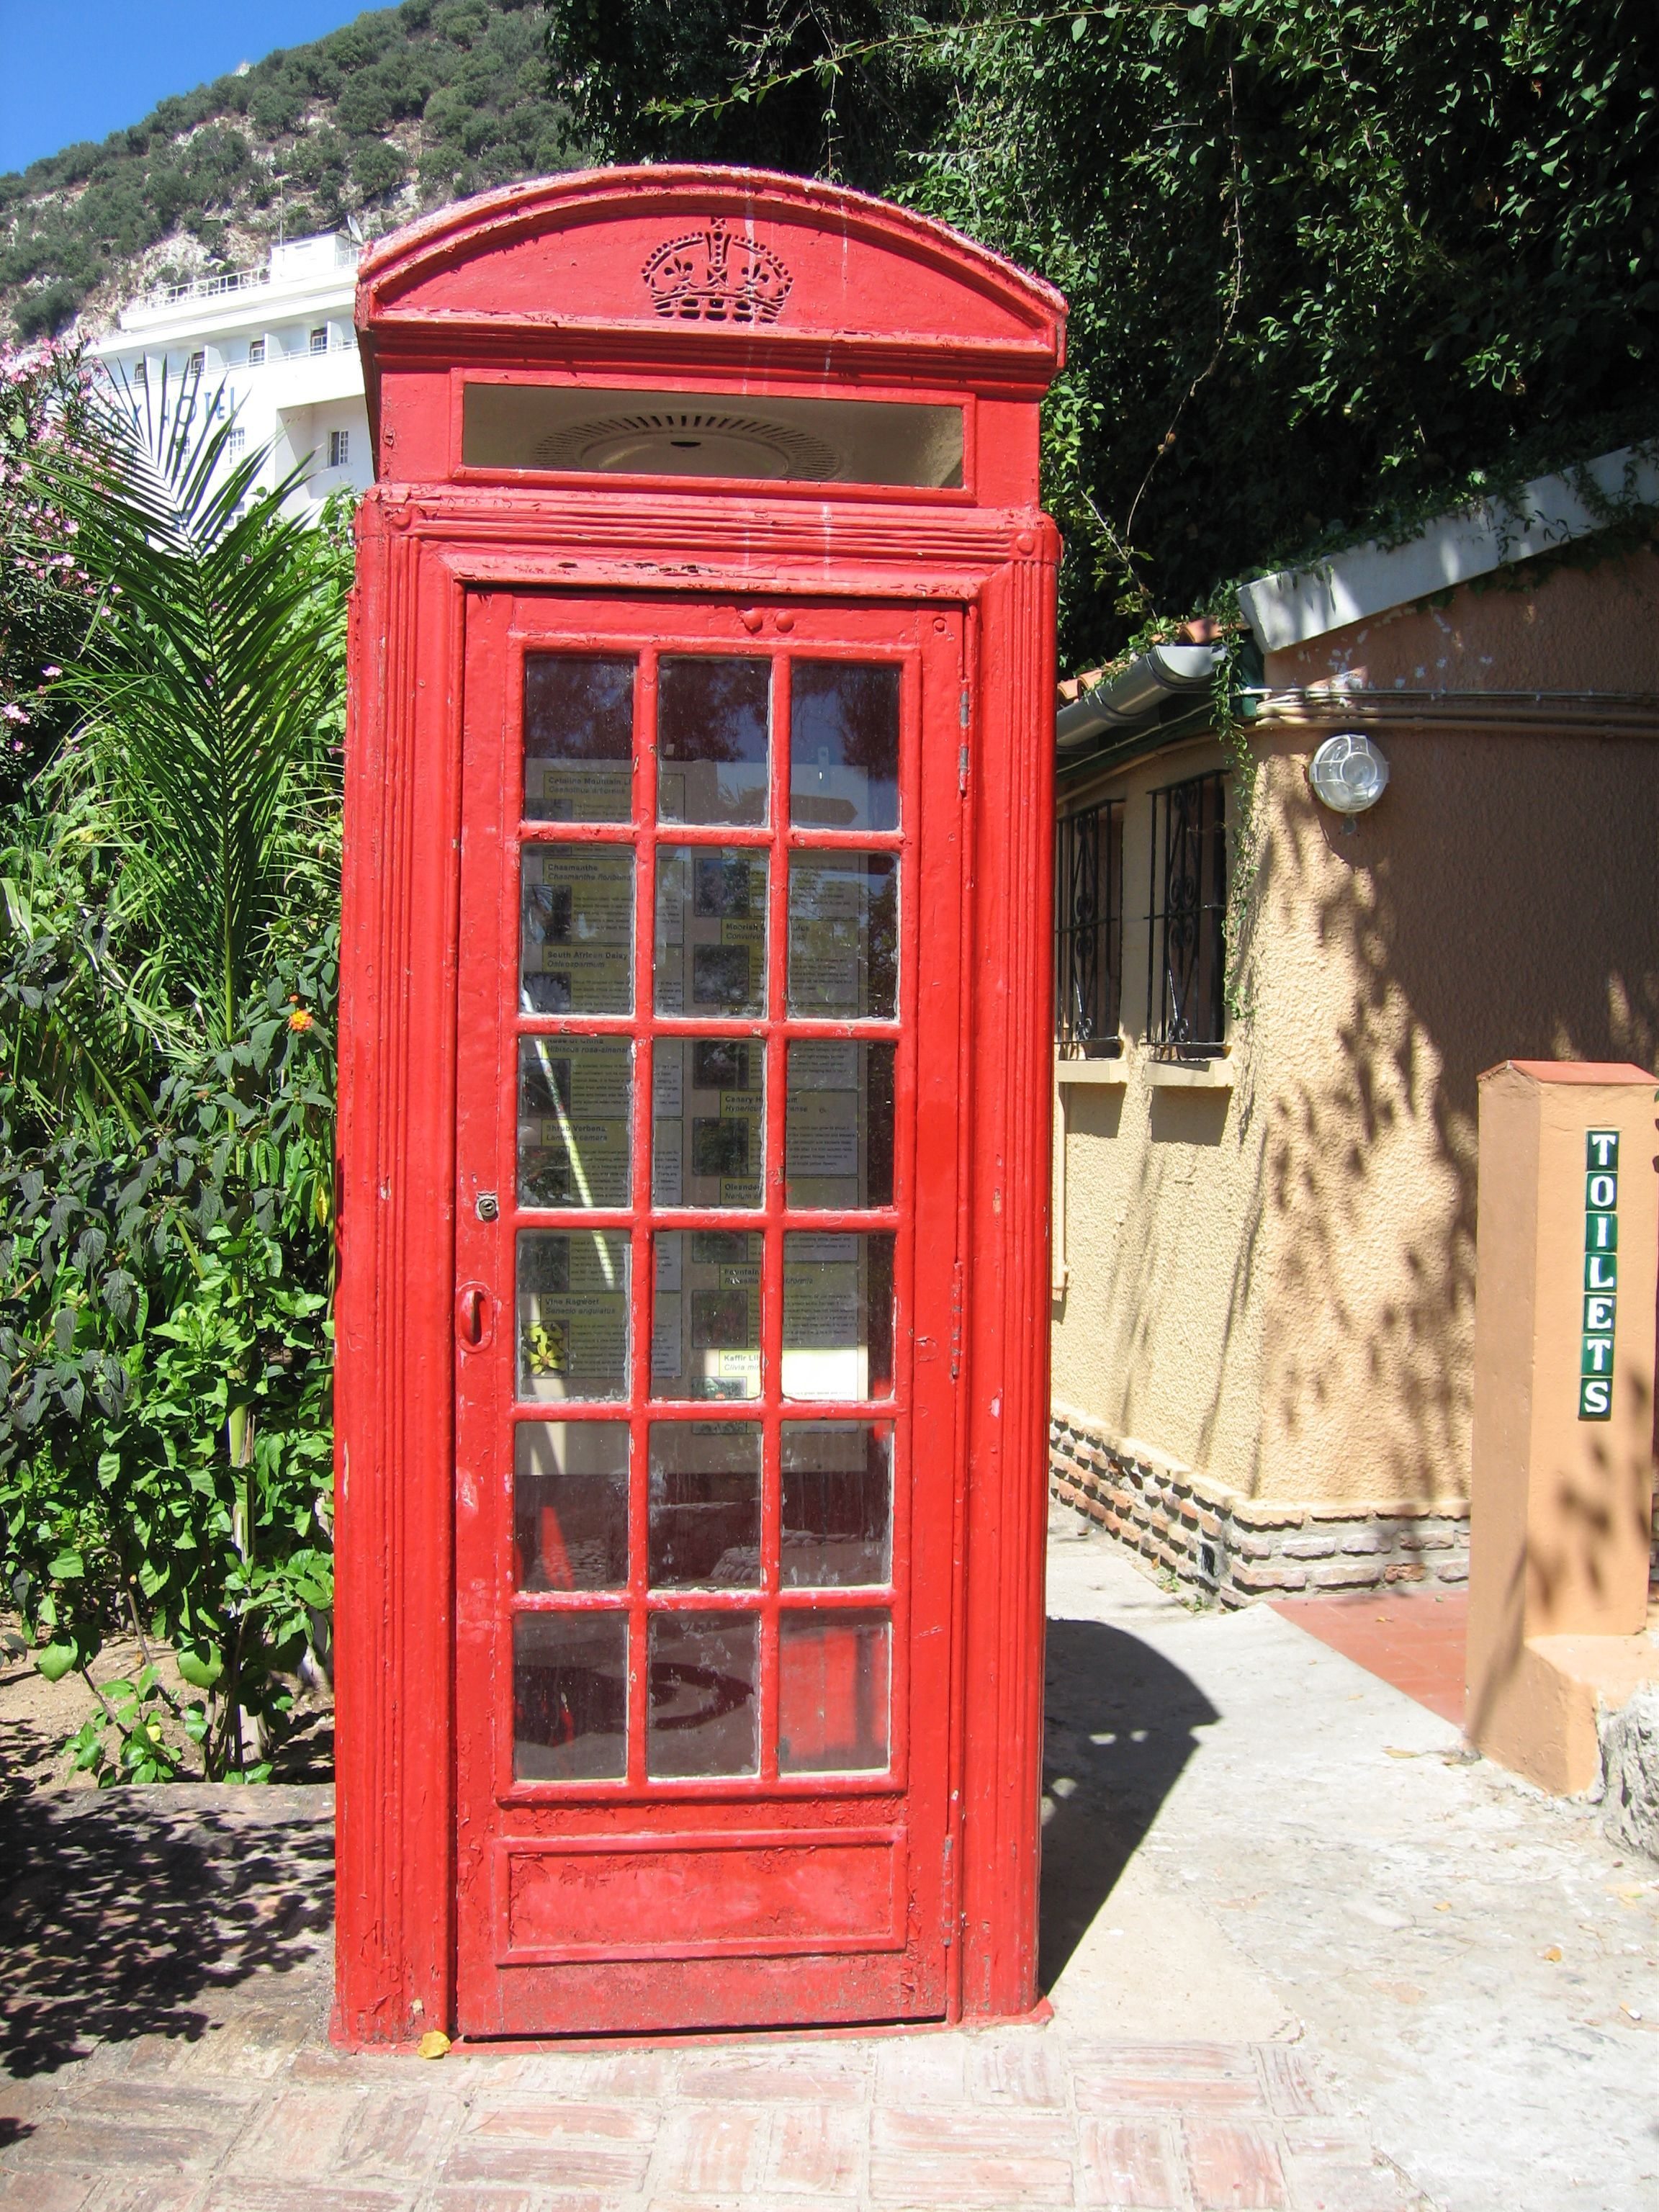 Here We Go Lux'ry Loo (With images) Red telephone box